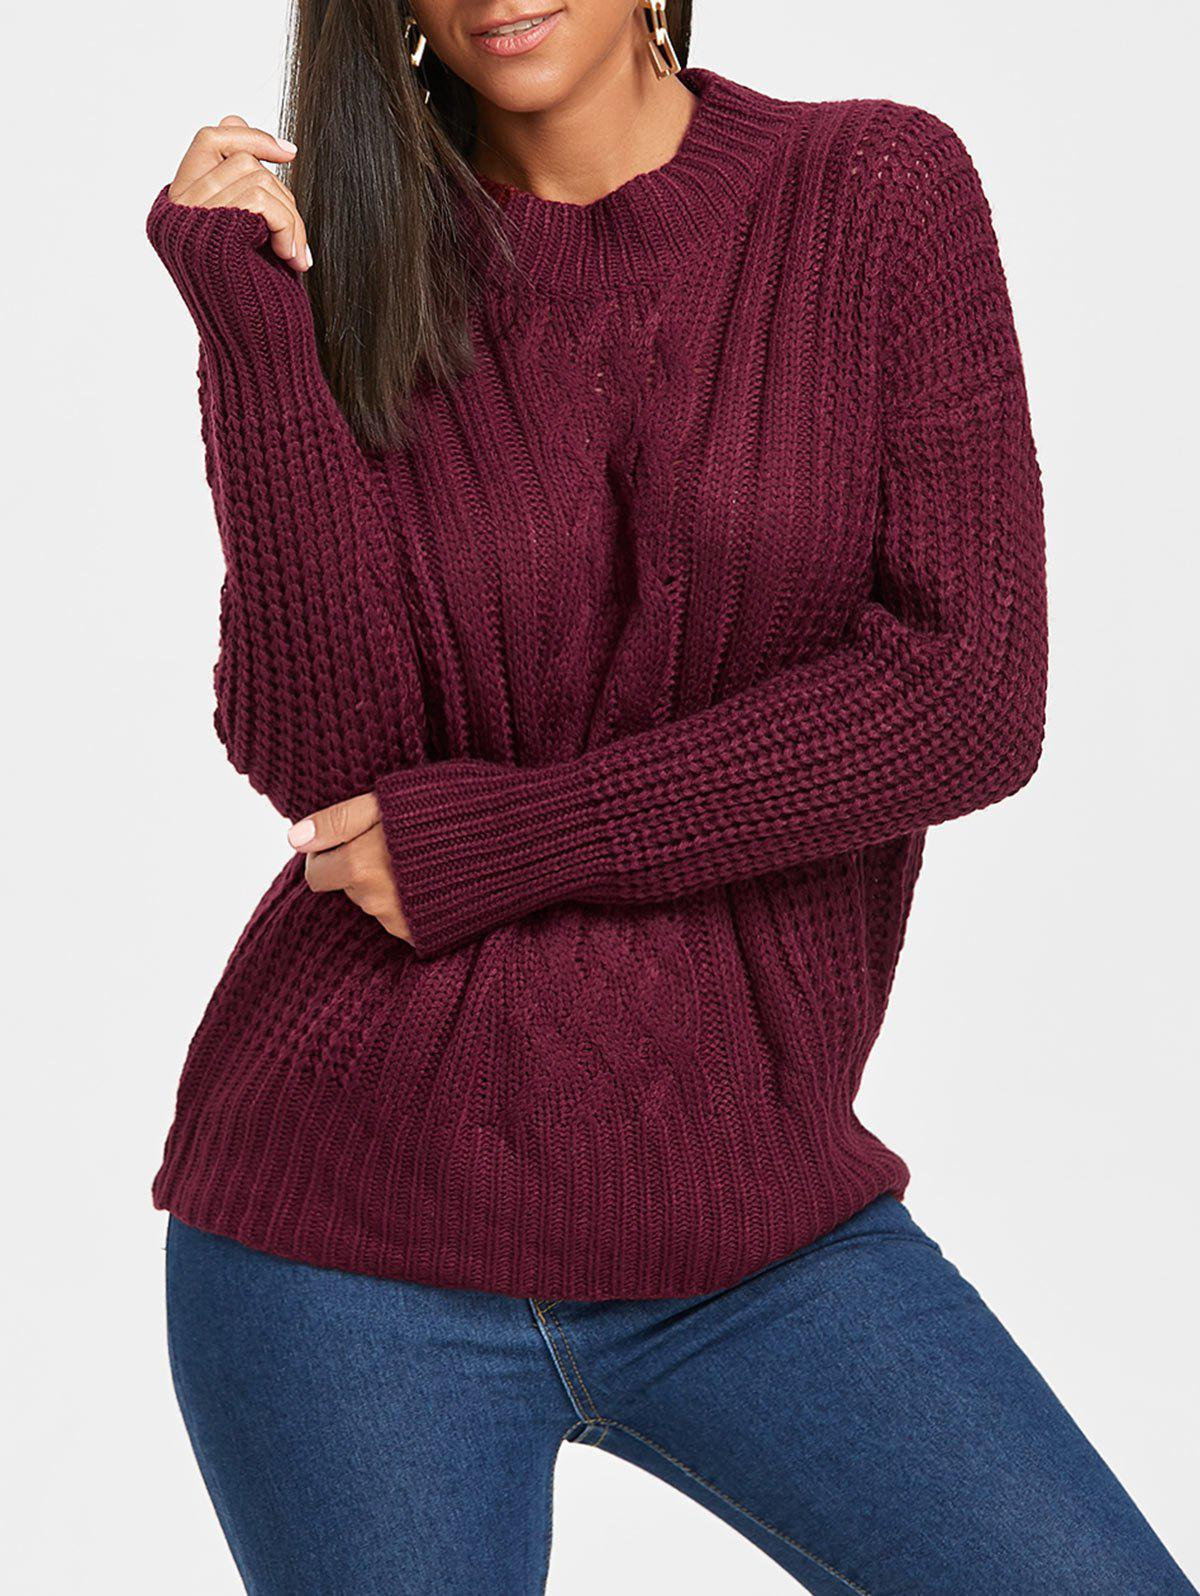 Mock Neck Cable Knitted Sweater skew neck cable knitted sweater